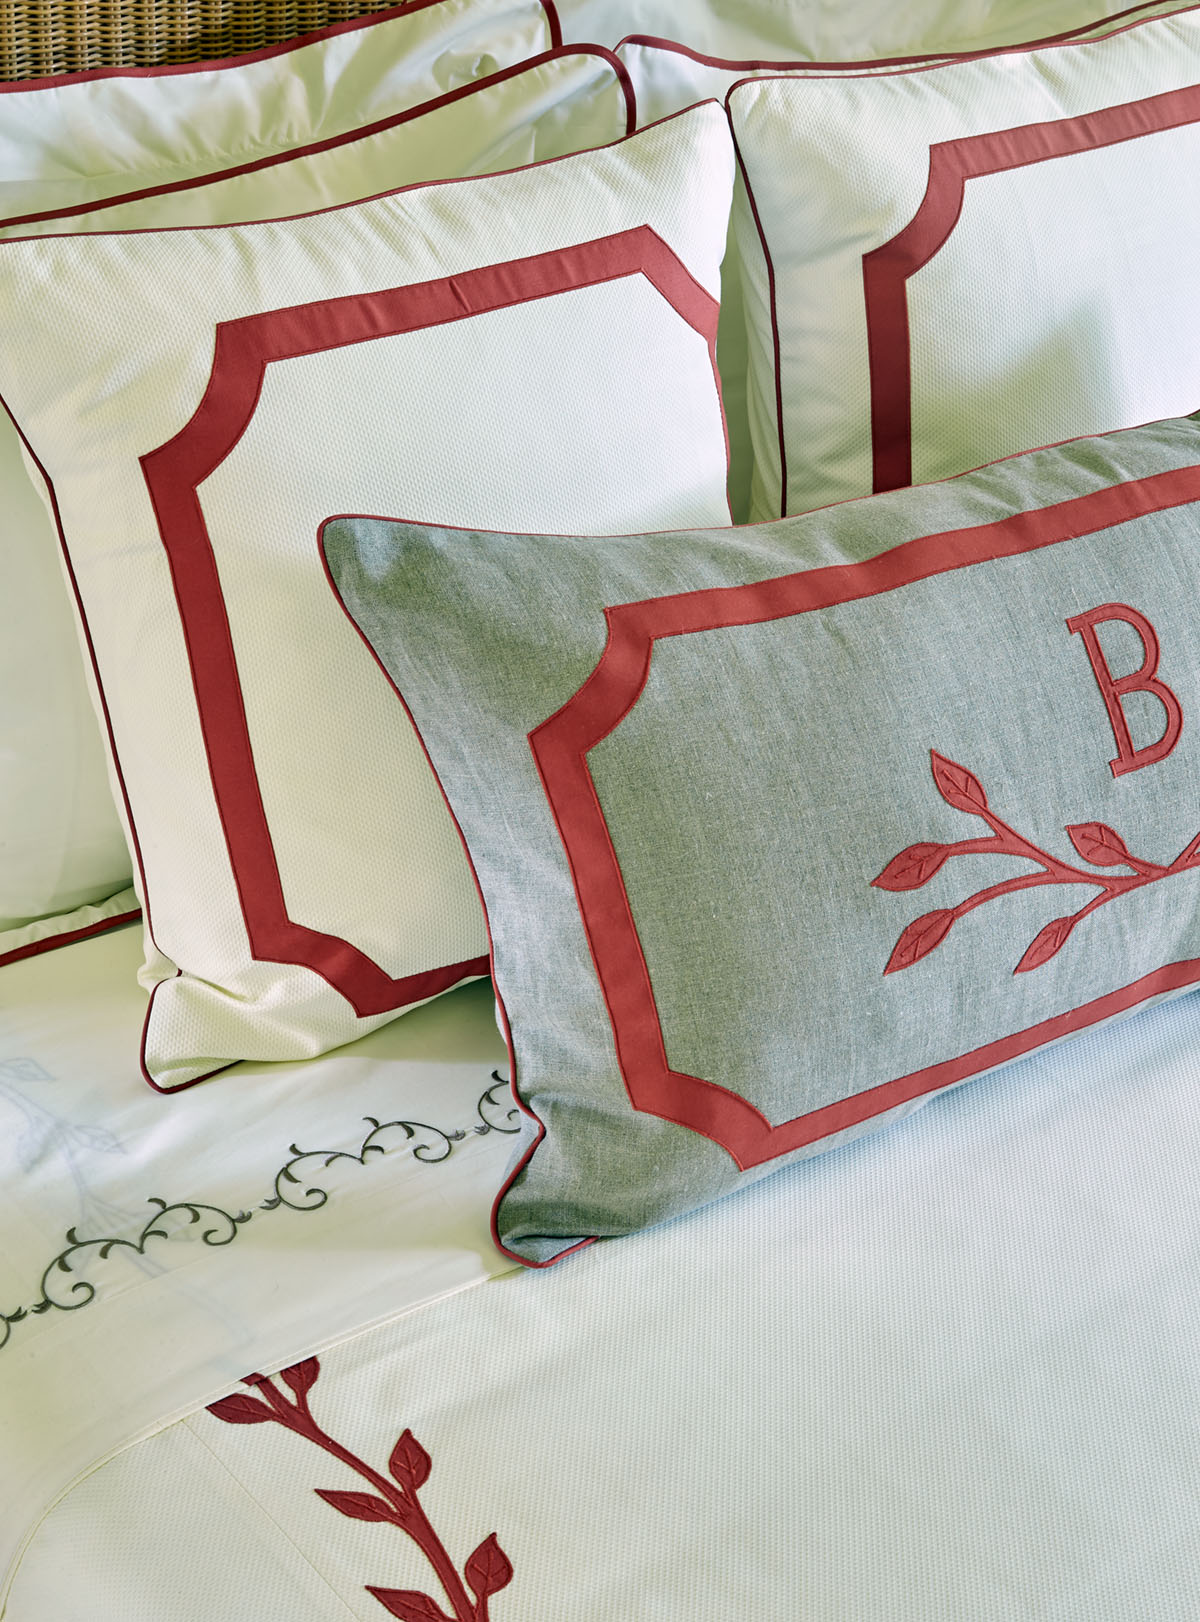 monographed decorative pillows, Flower magazine showhouse at Brierfield